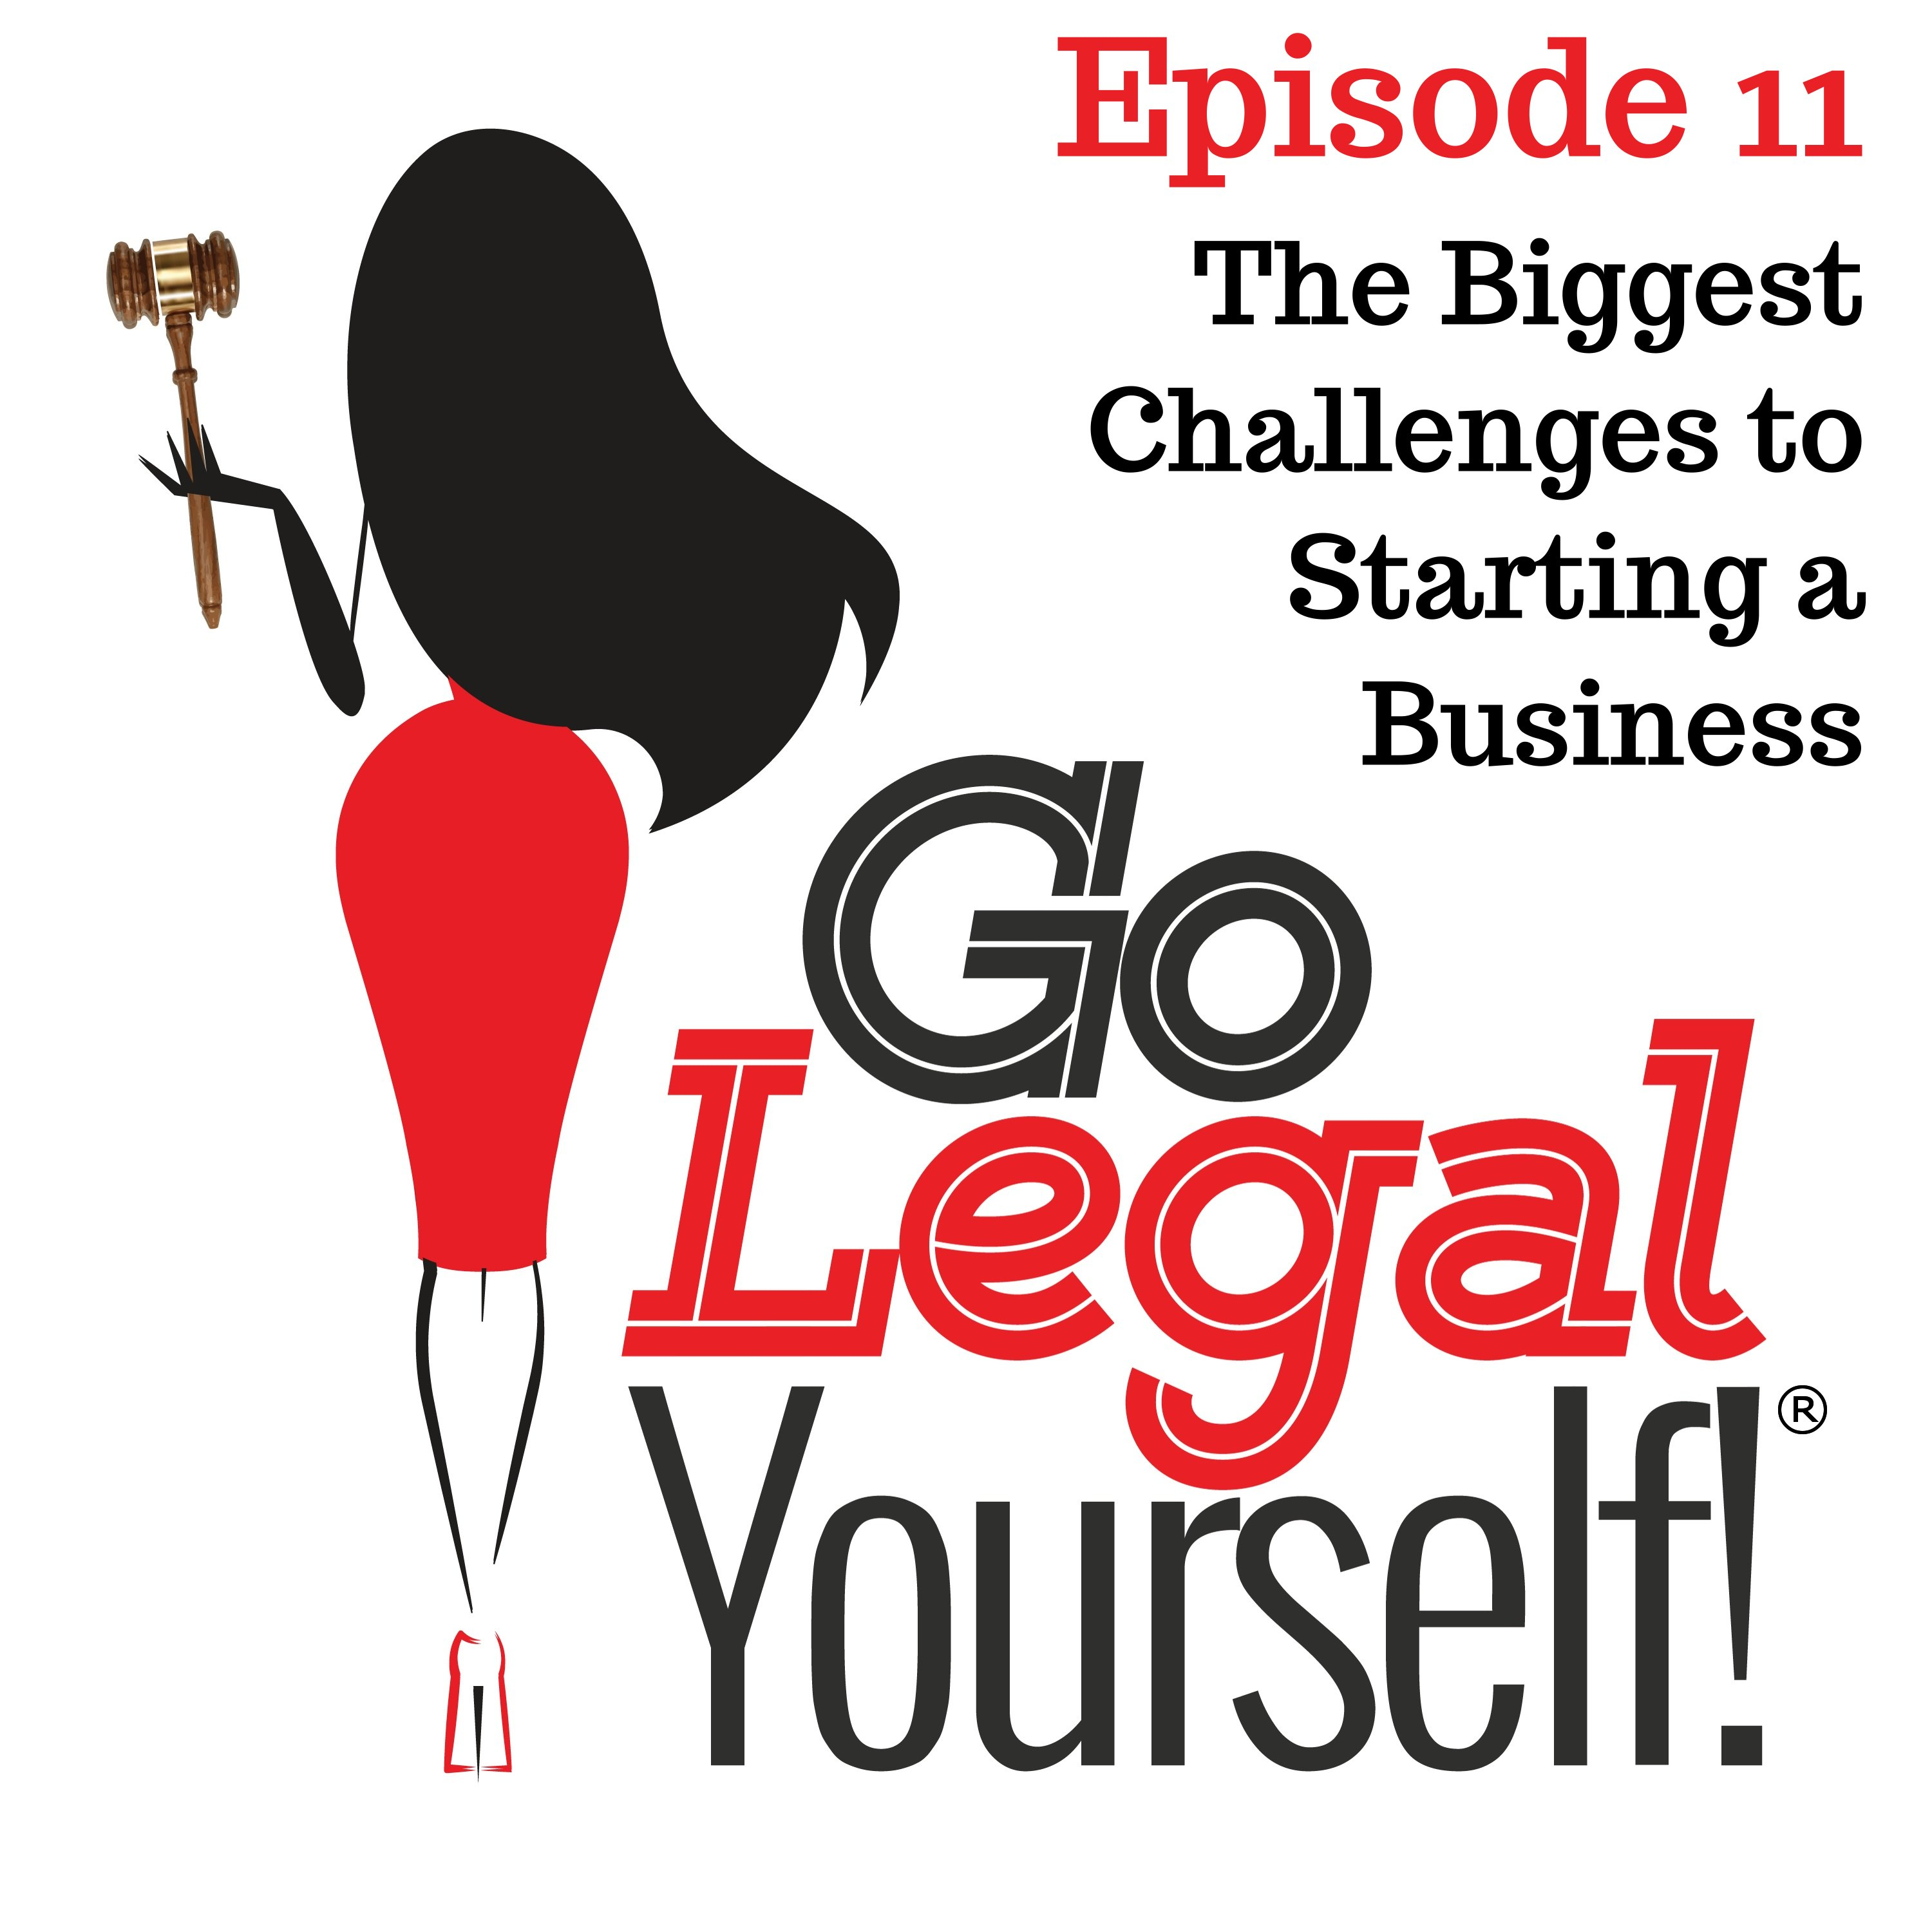 Ep. 11 What are the biggest challenges to starting a business?